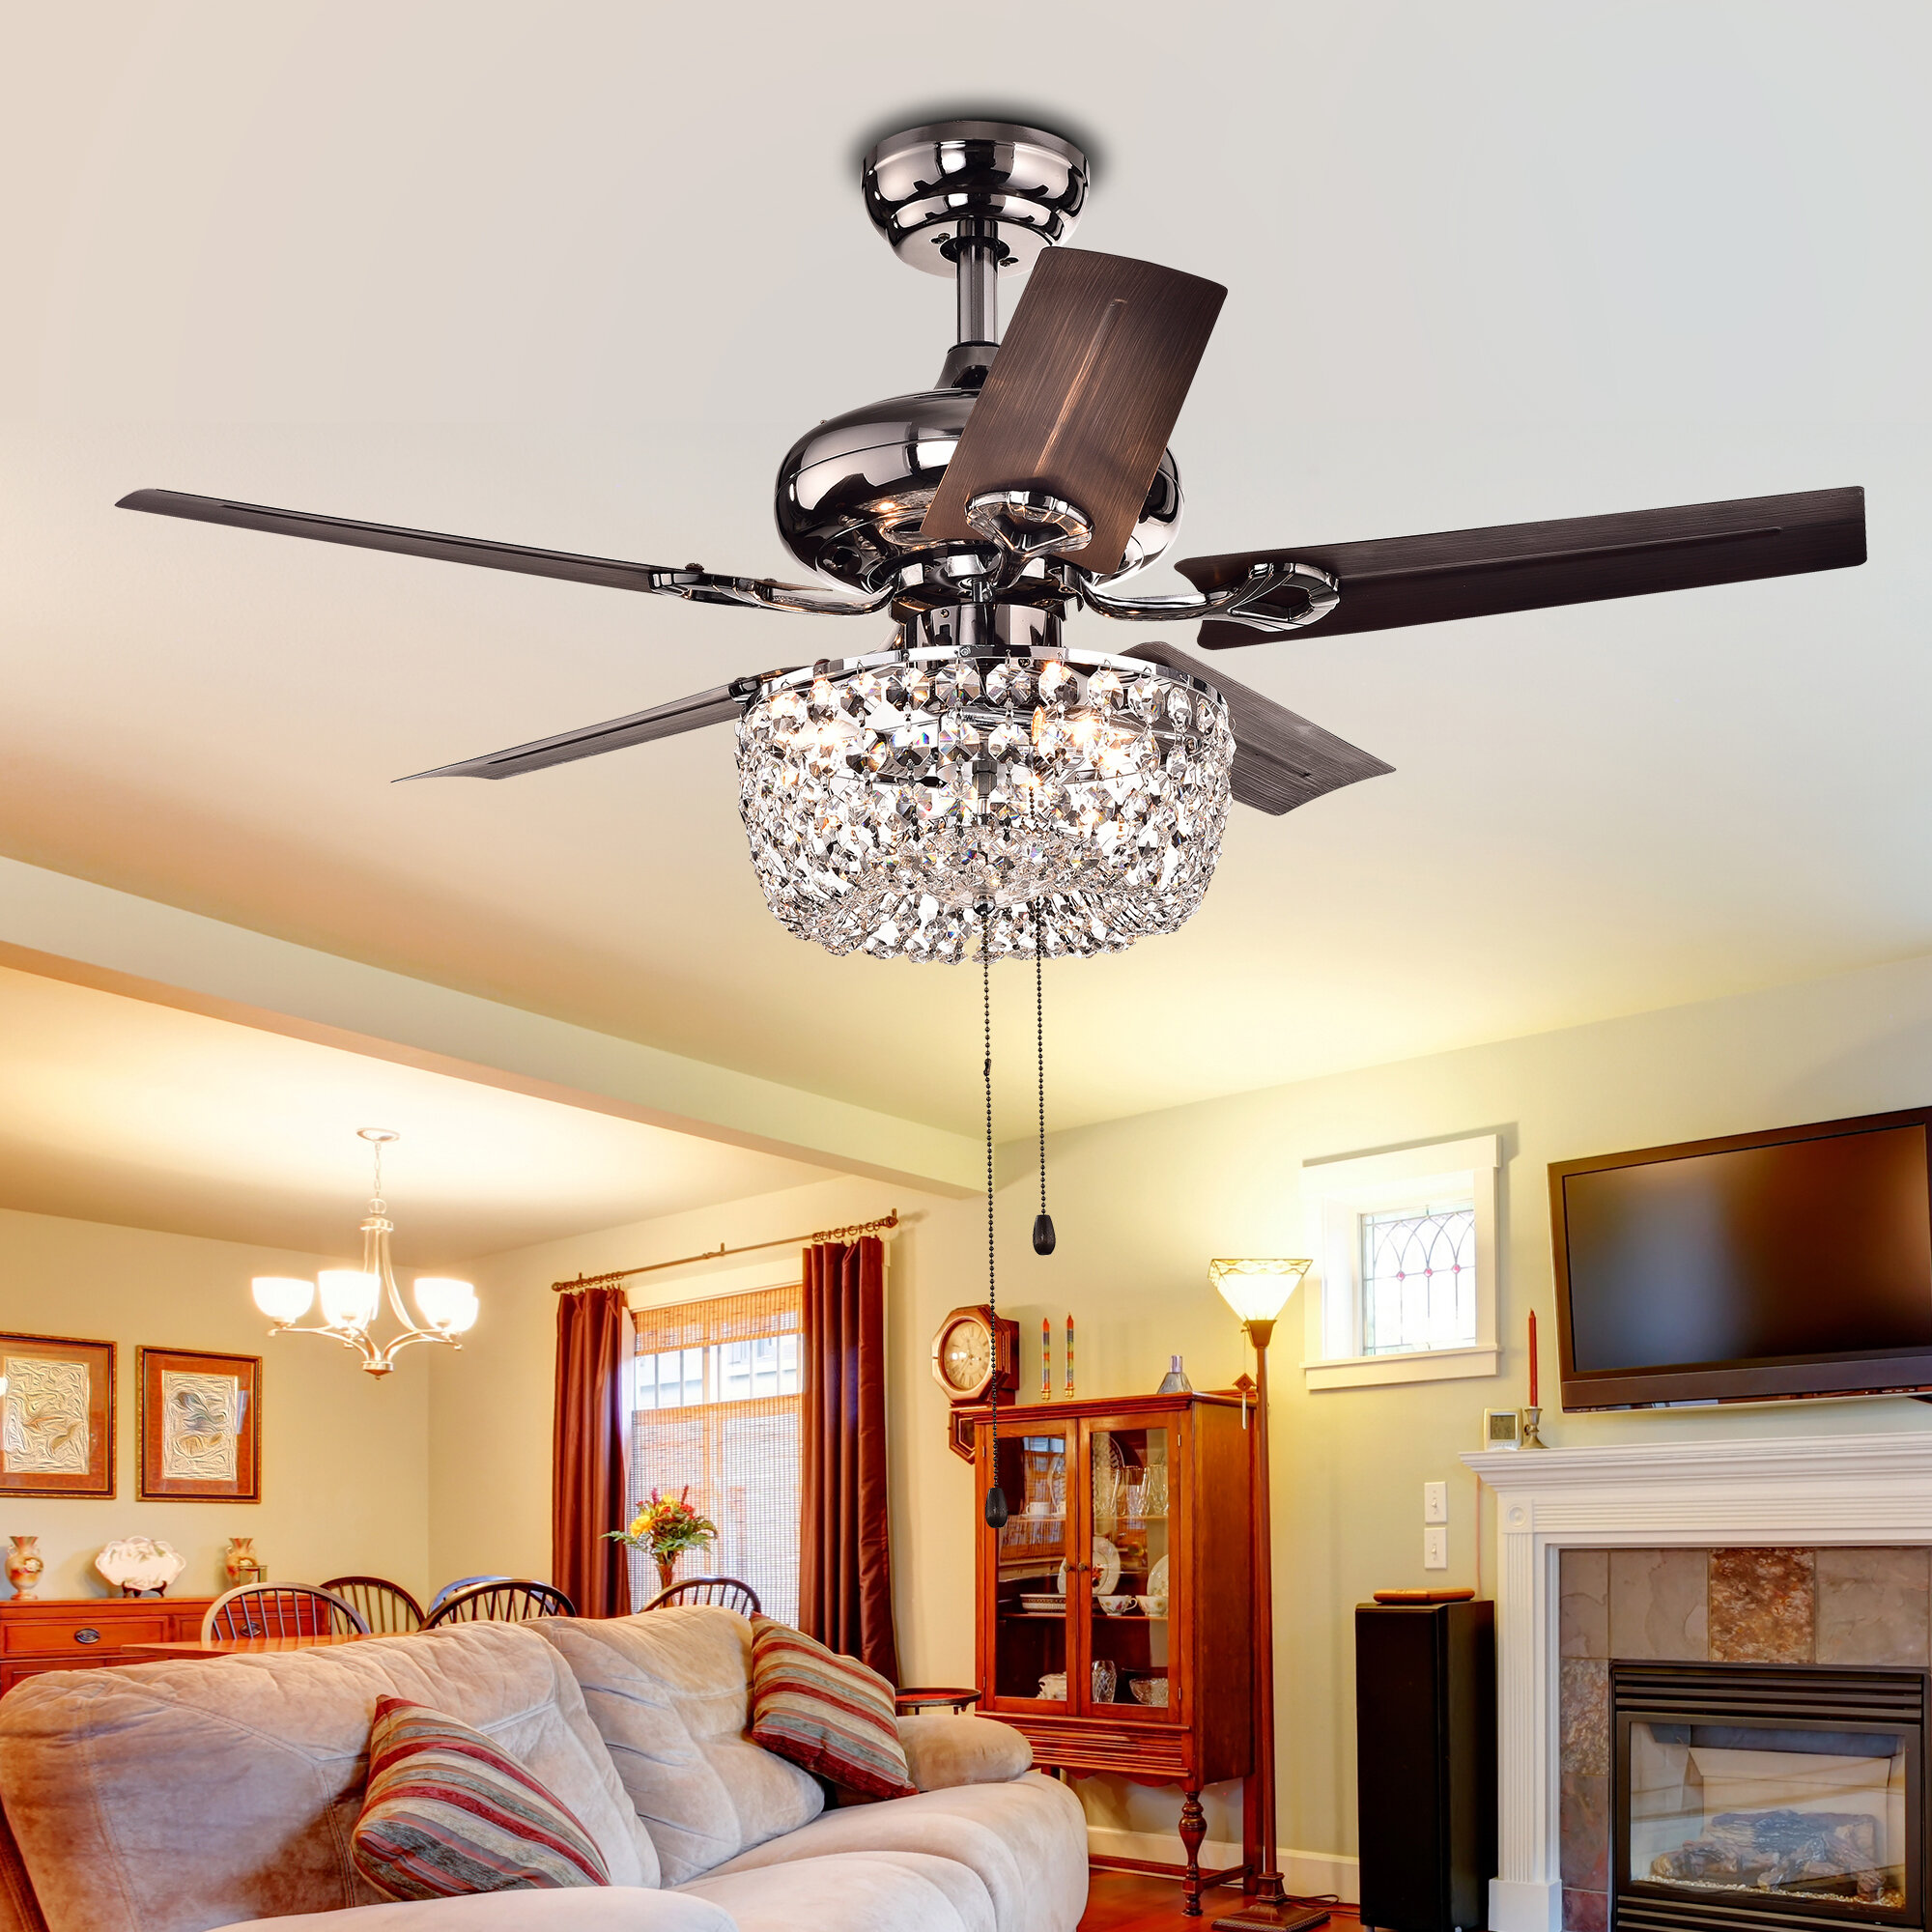 Bruno 3 Light Bowl Ceiling Fan Light Fitter & Reviews